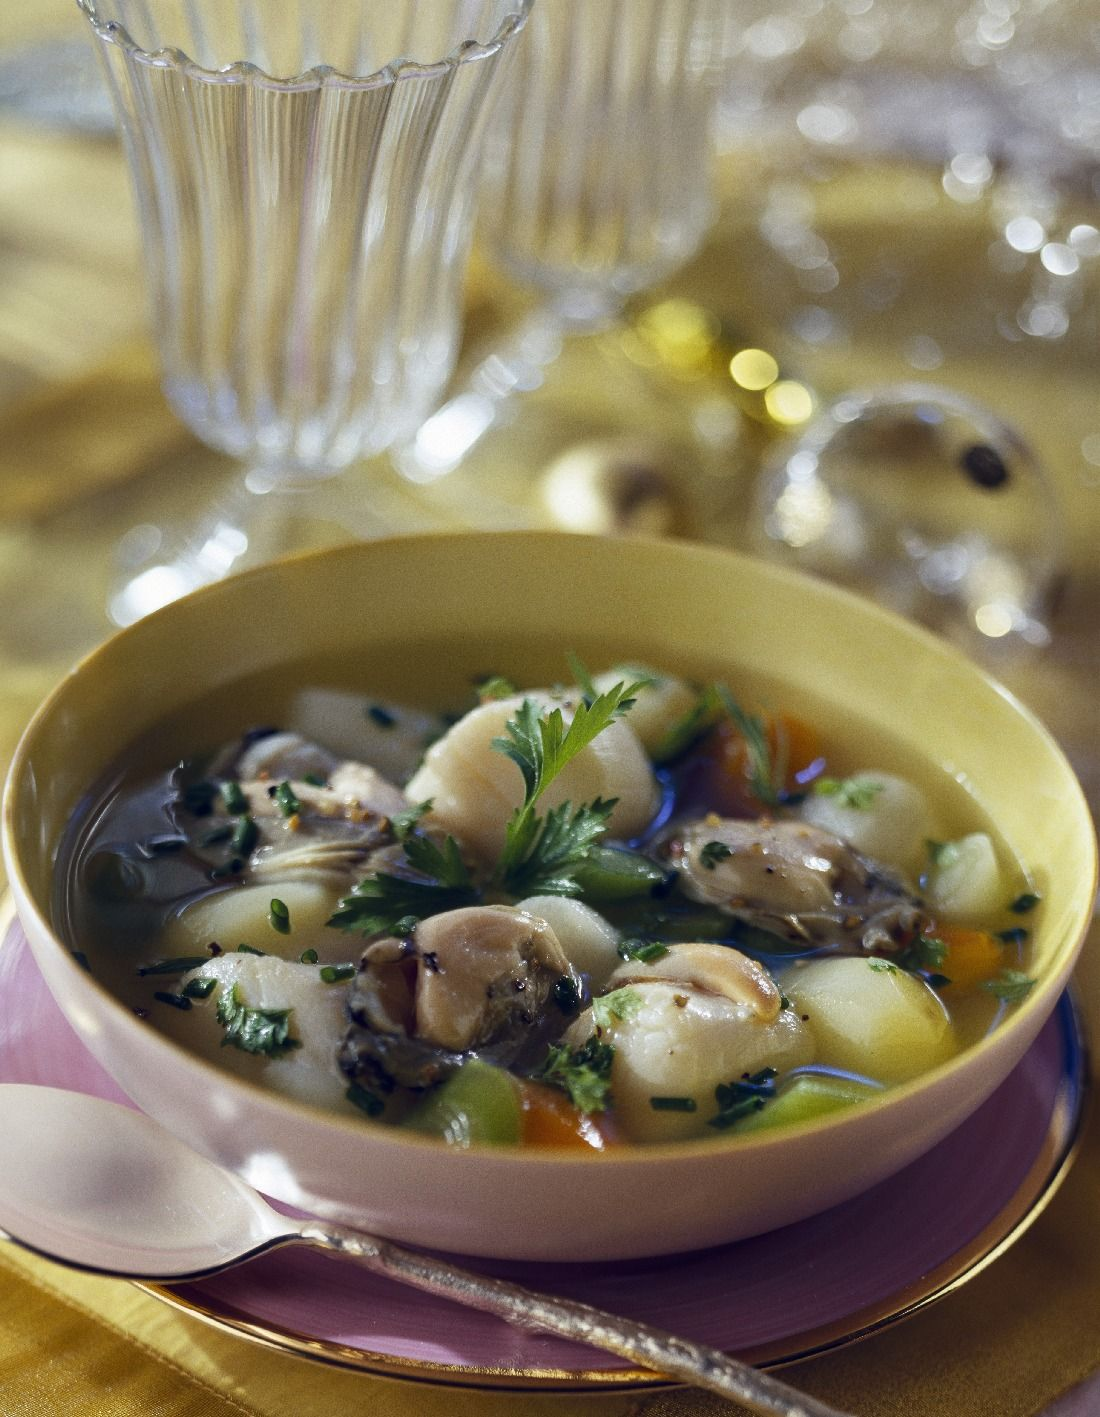 Seafood in Broth with Chardonnay recipe ...